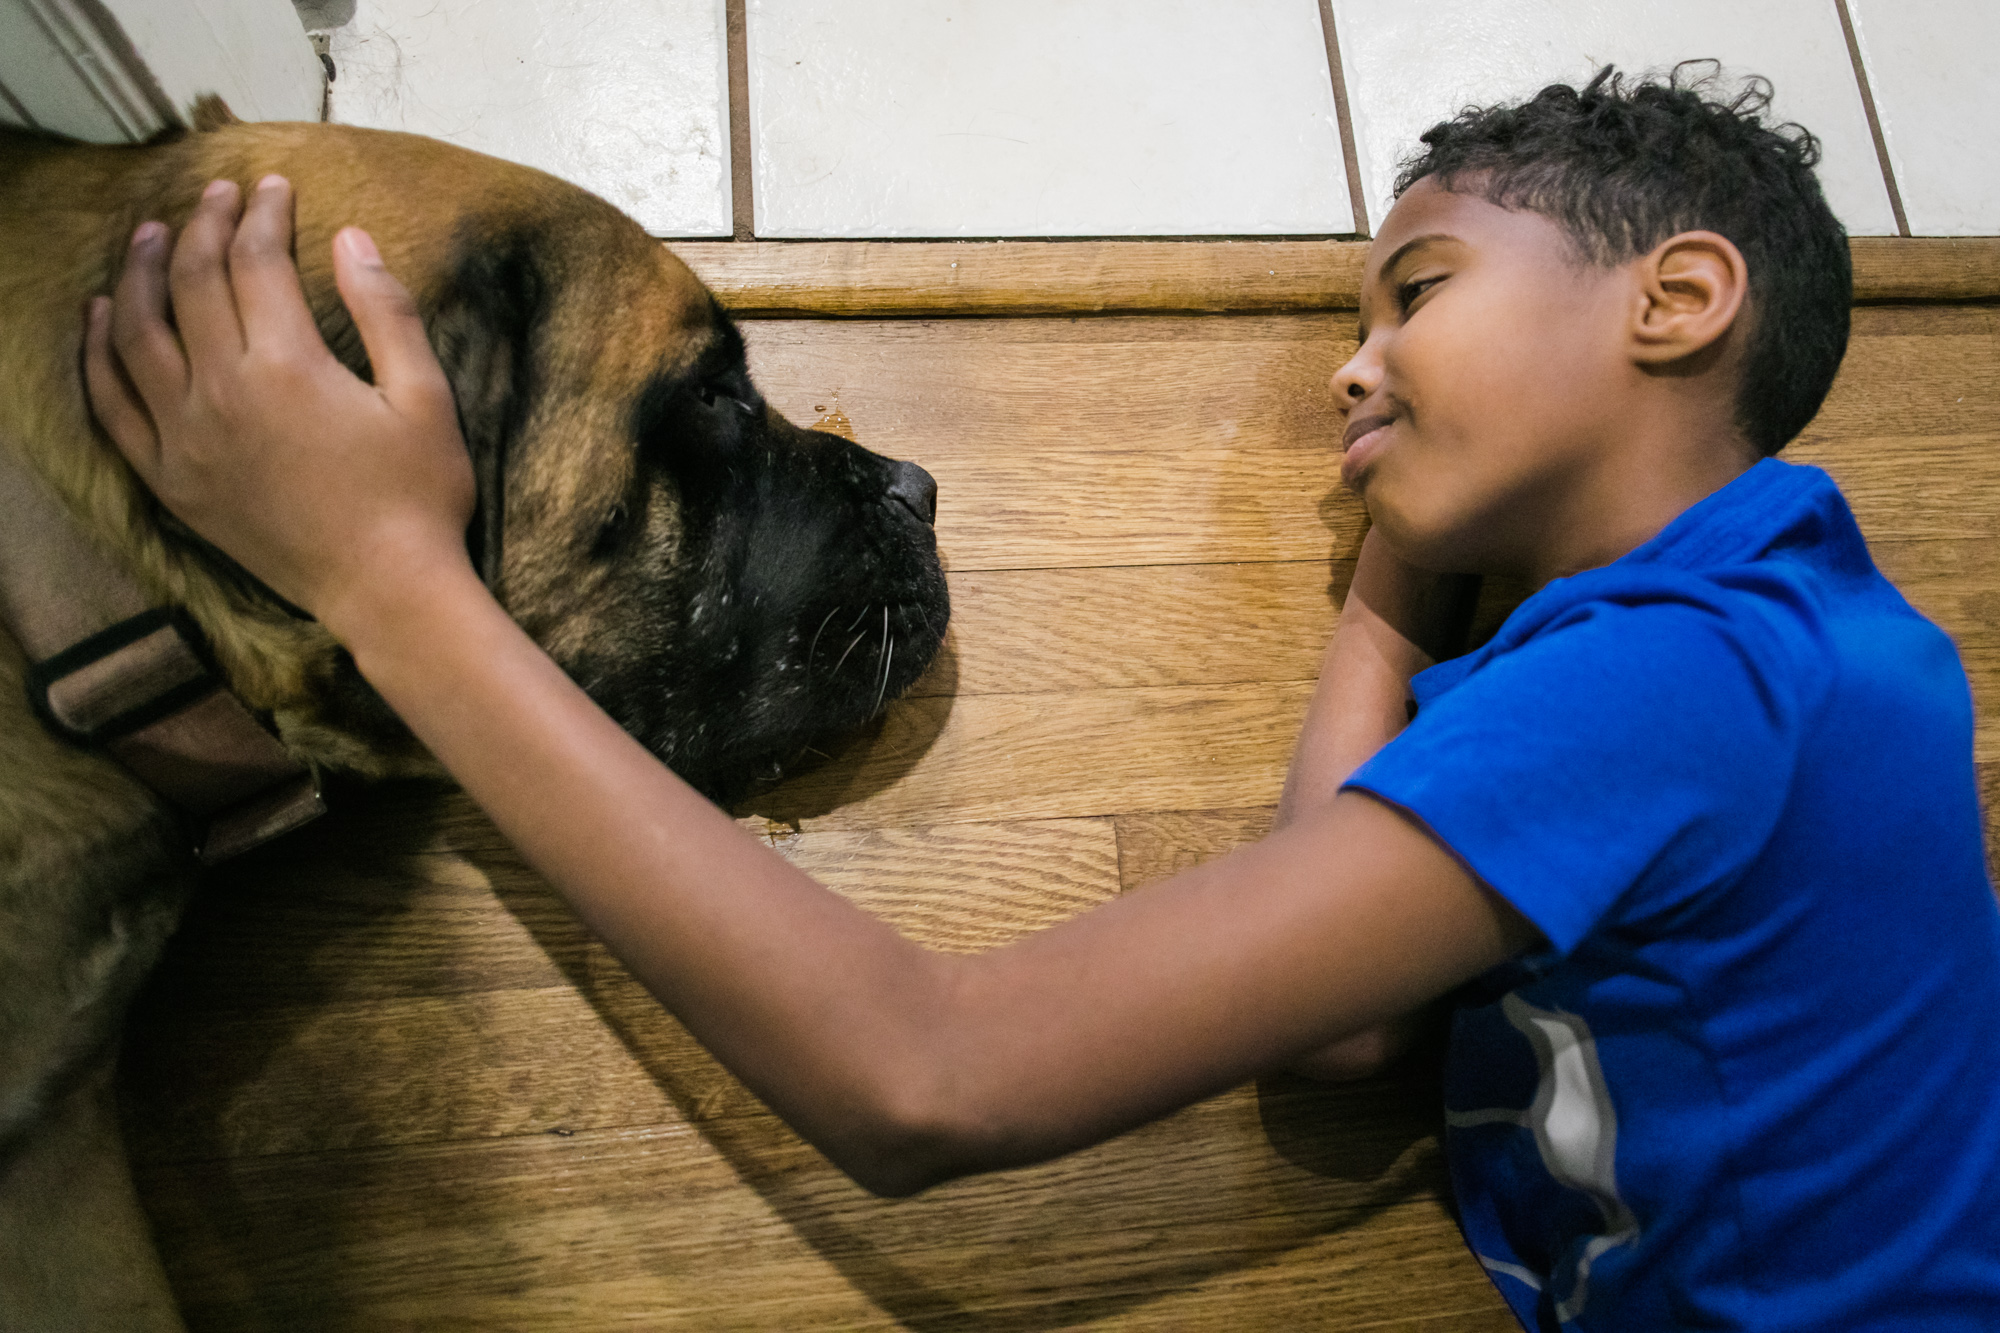 A boy puts his hand on a dog's head as they both lie on the ground facing each other